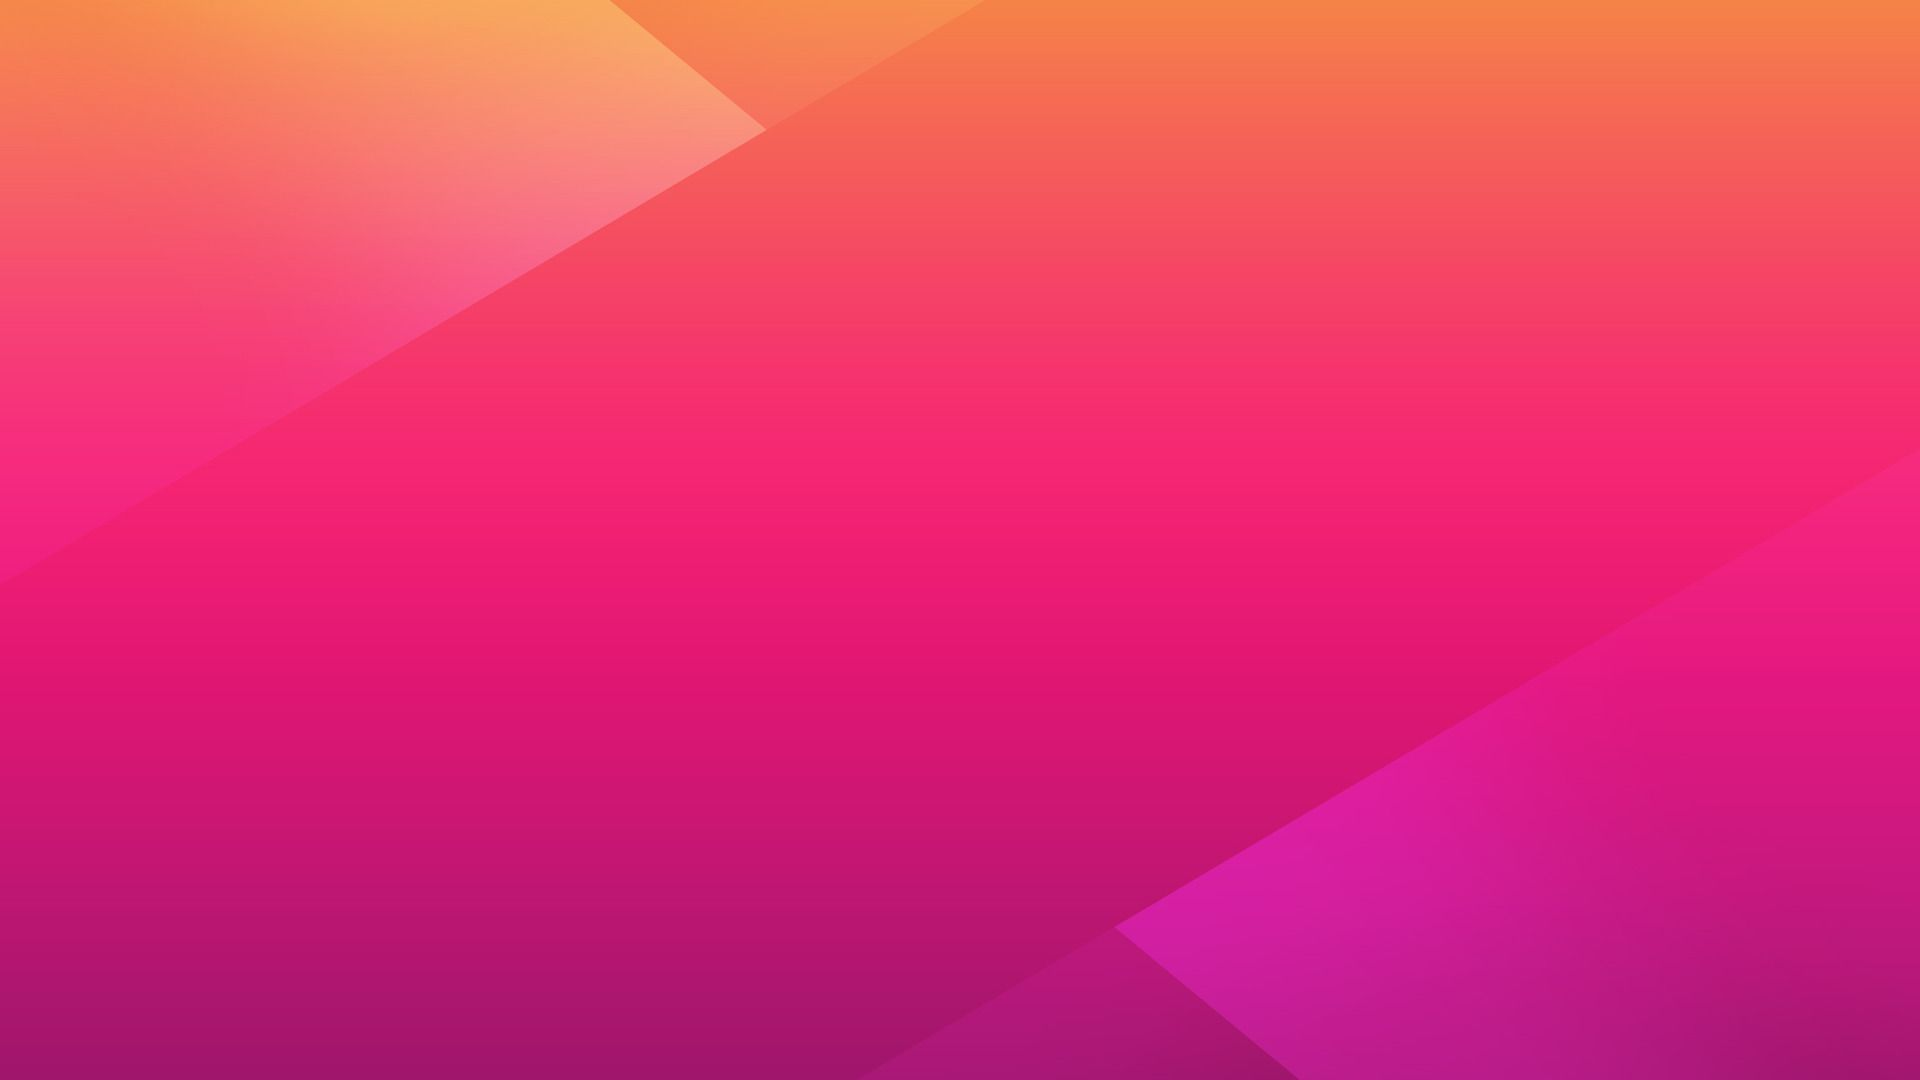 Gradient Wallpapers - Wallpaper Cave